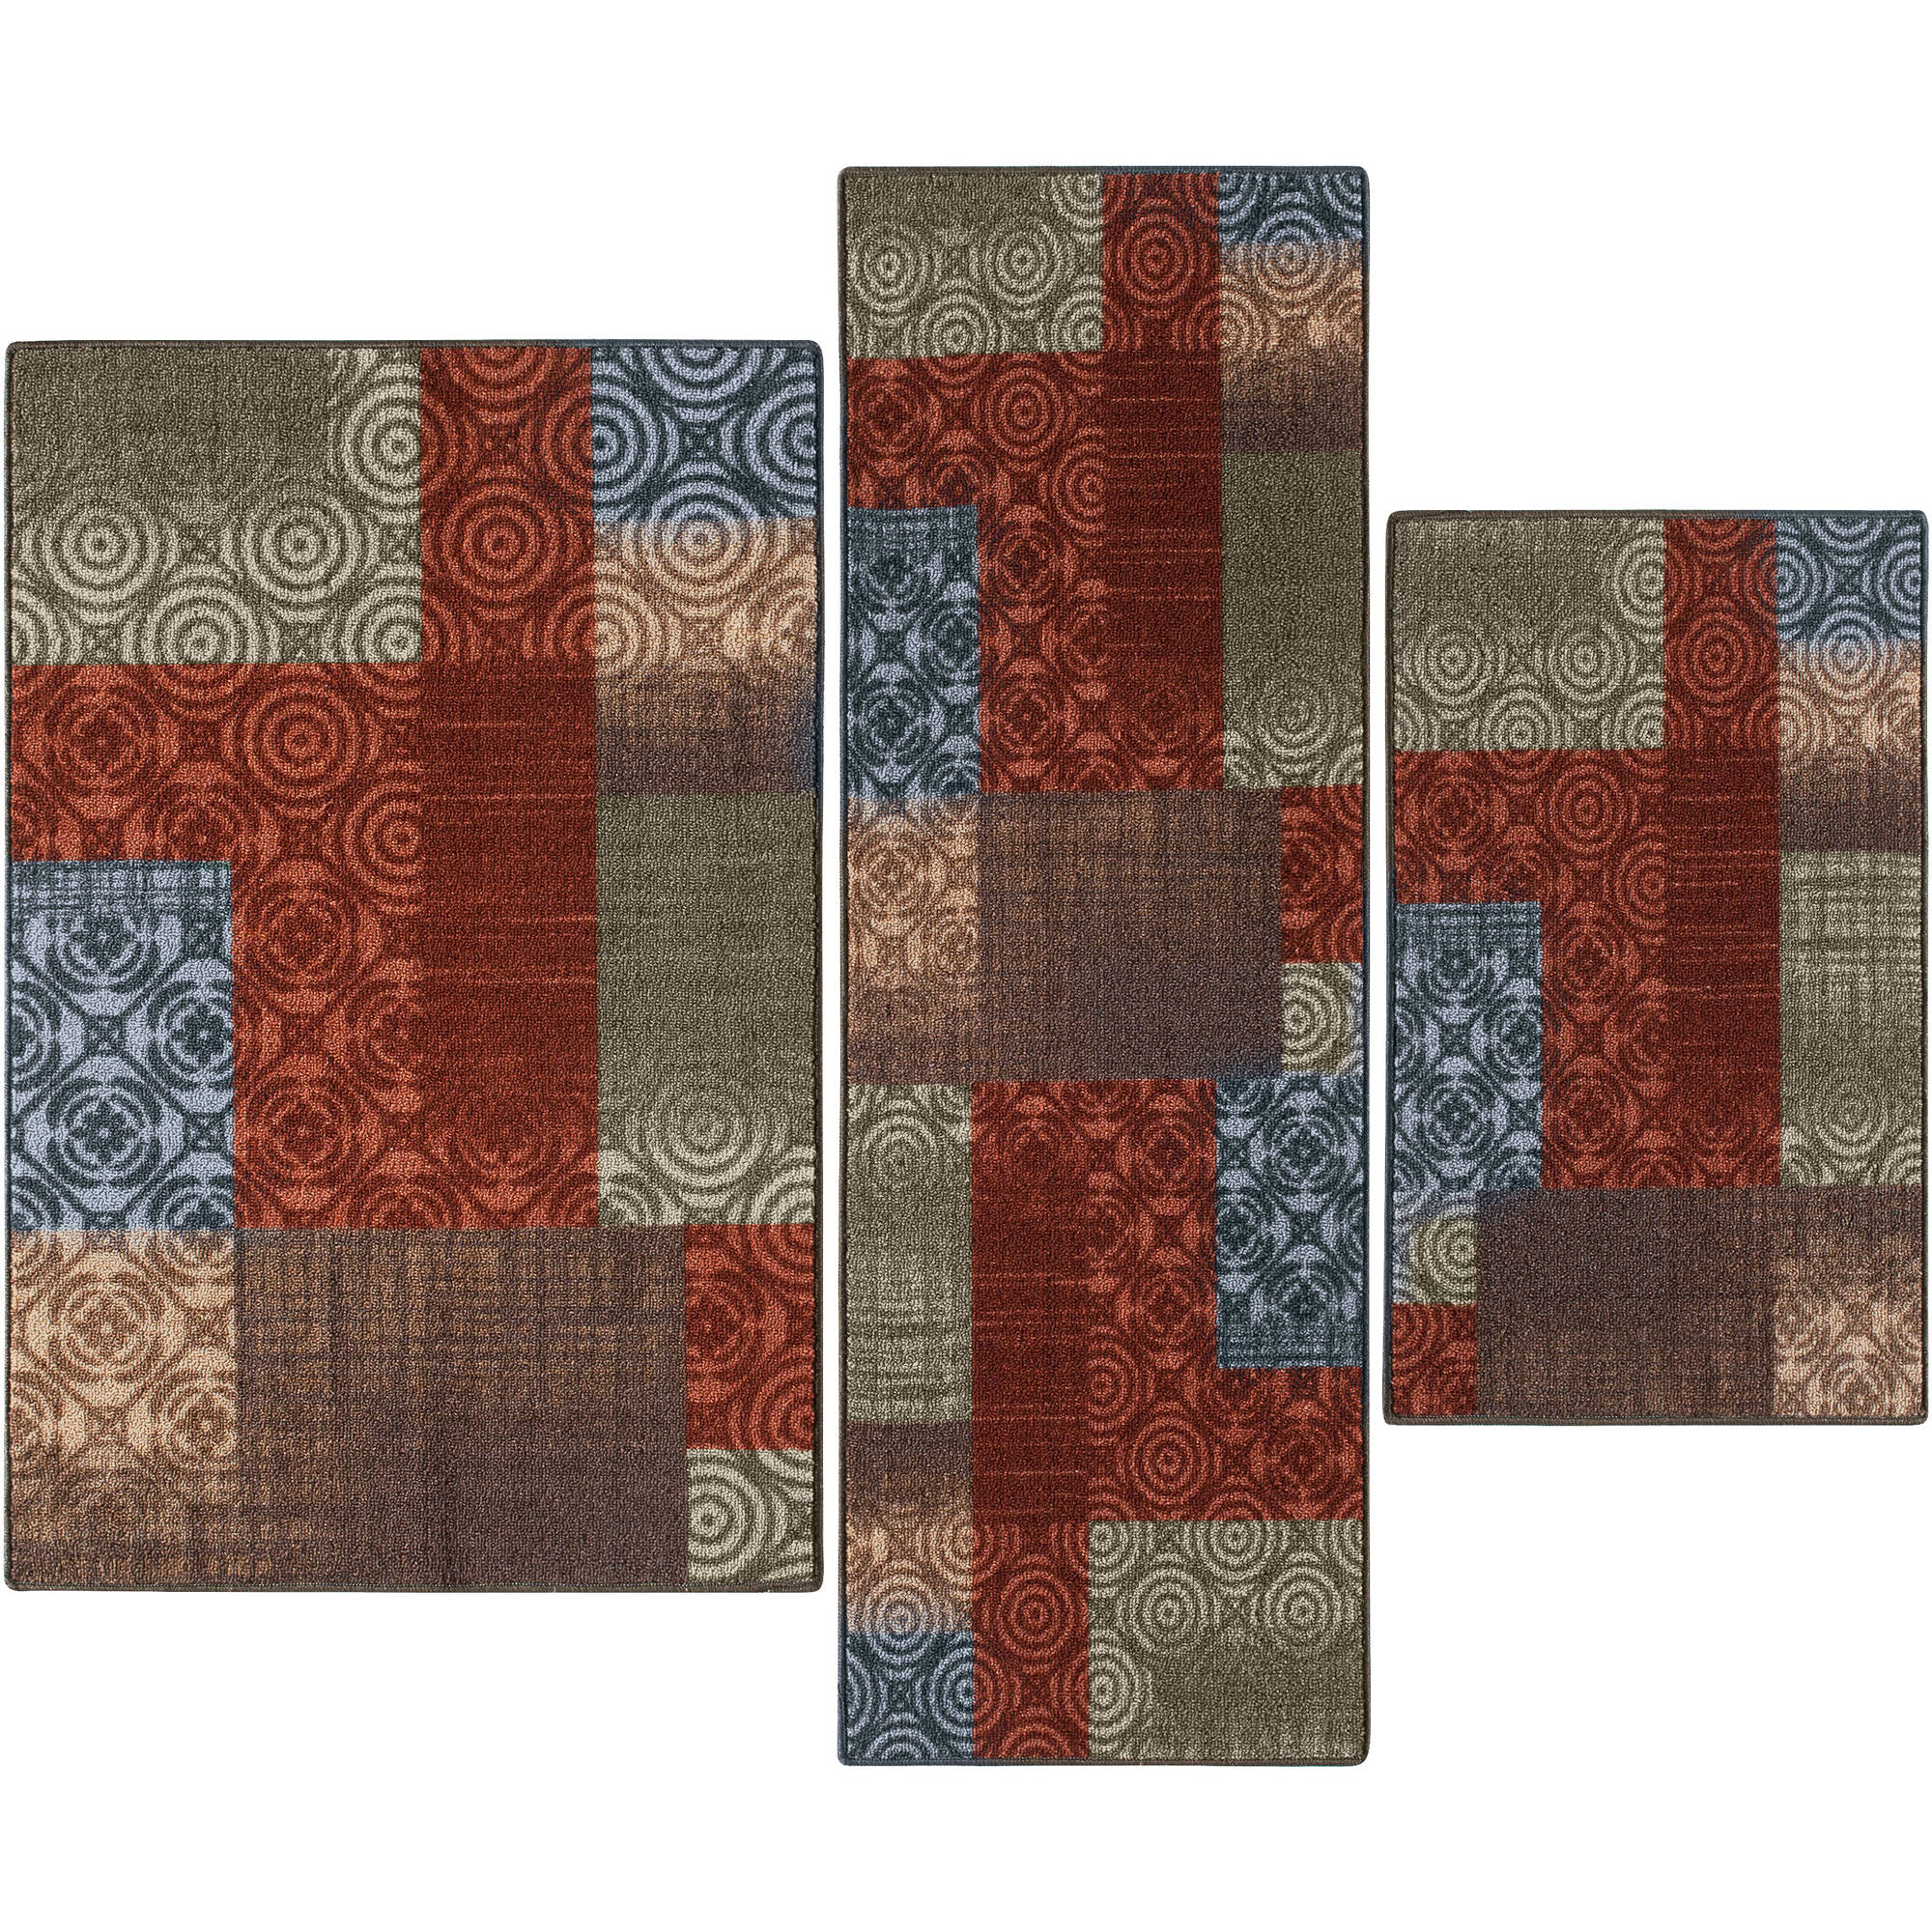 Mainstays Payton 3-Piece Accent Rug Set